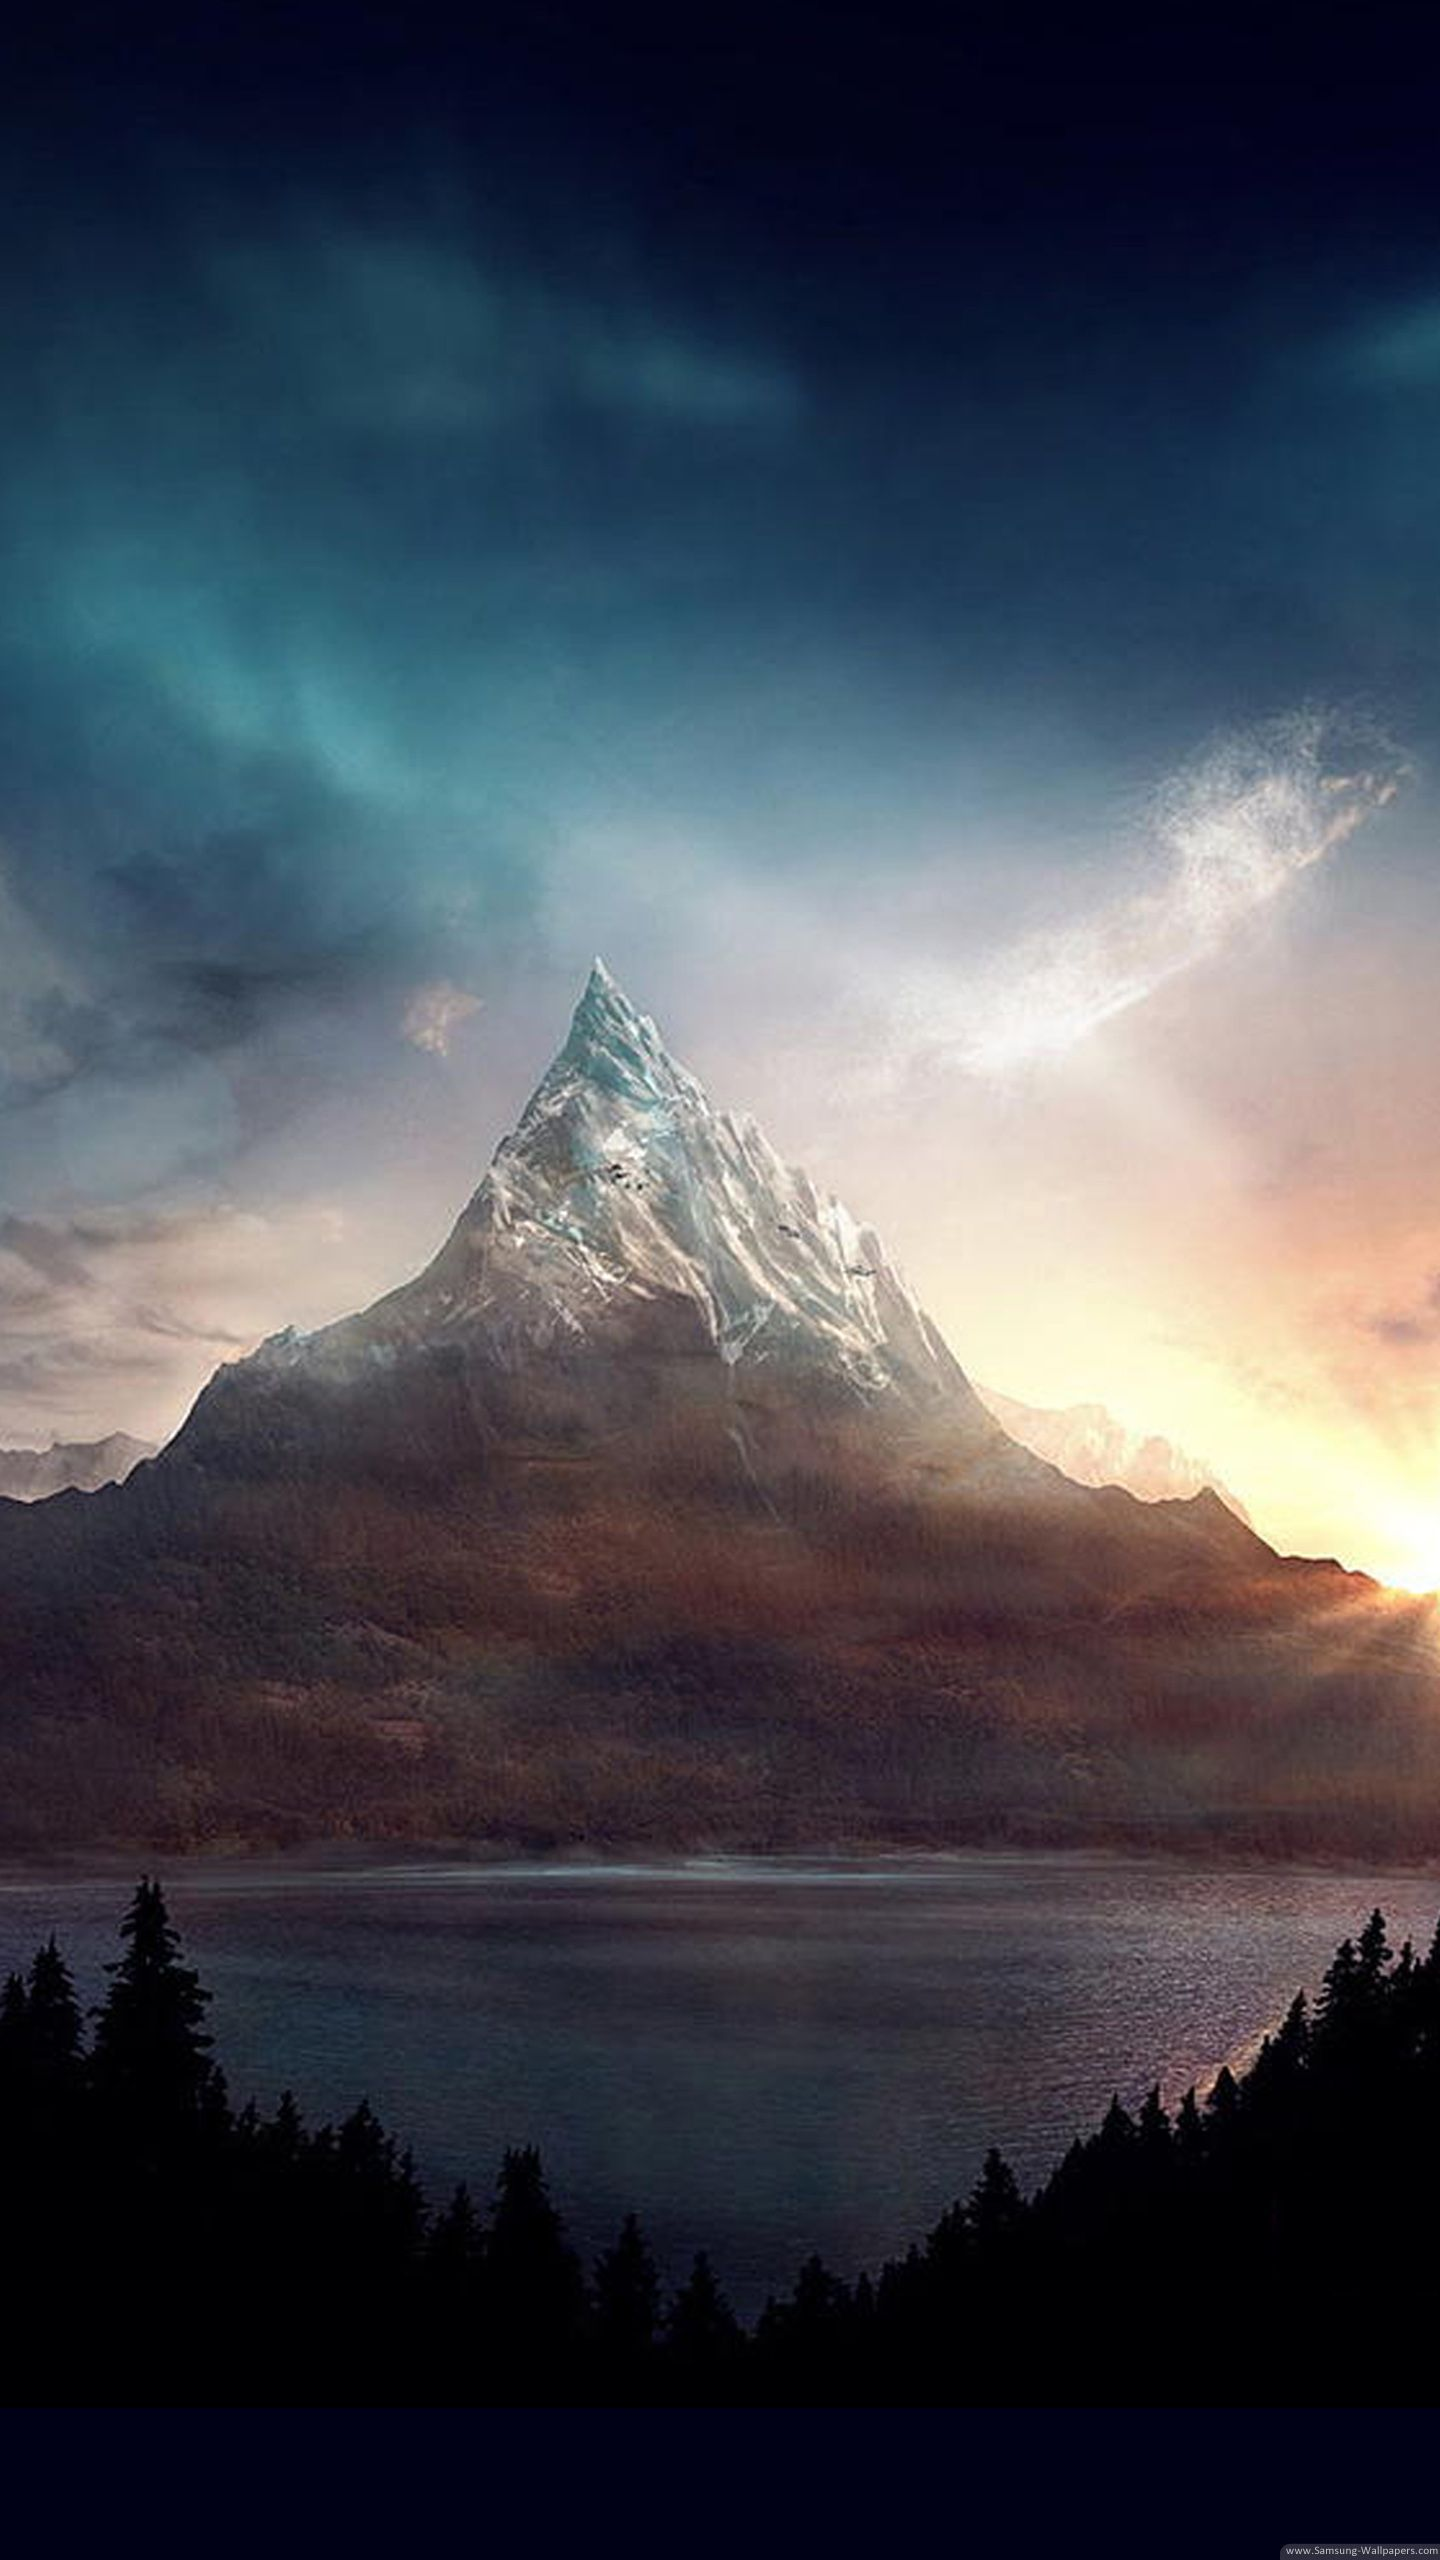 1440x2560 wallpaper space - Google Search | первая в 2019 г. | The Hobbit, Lord of the rings и ...